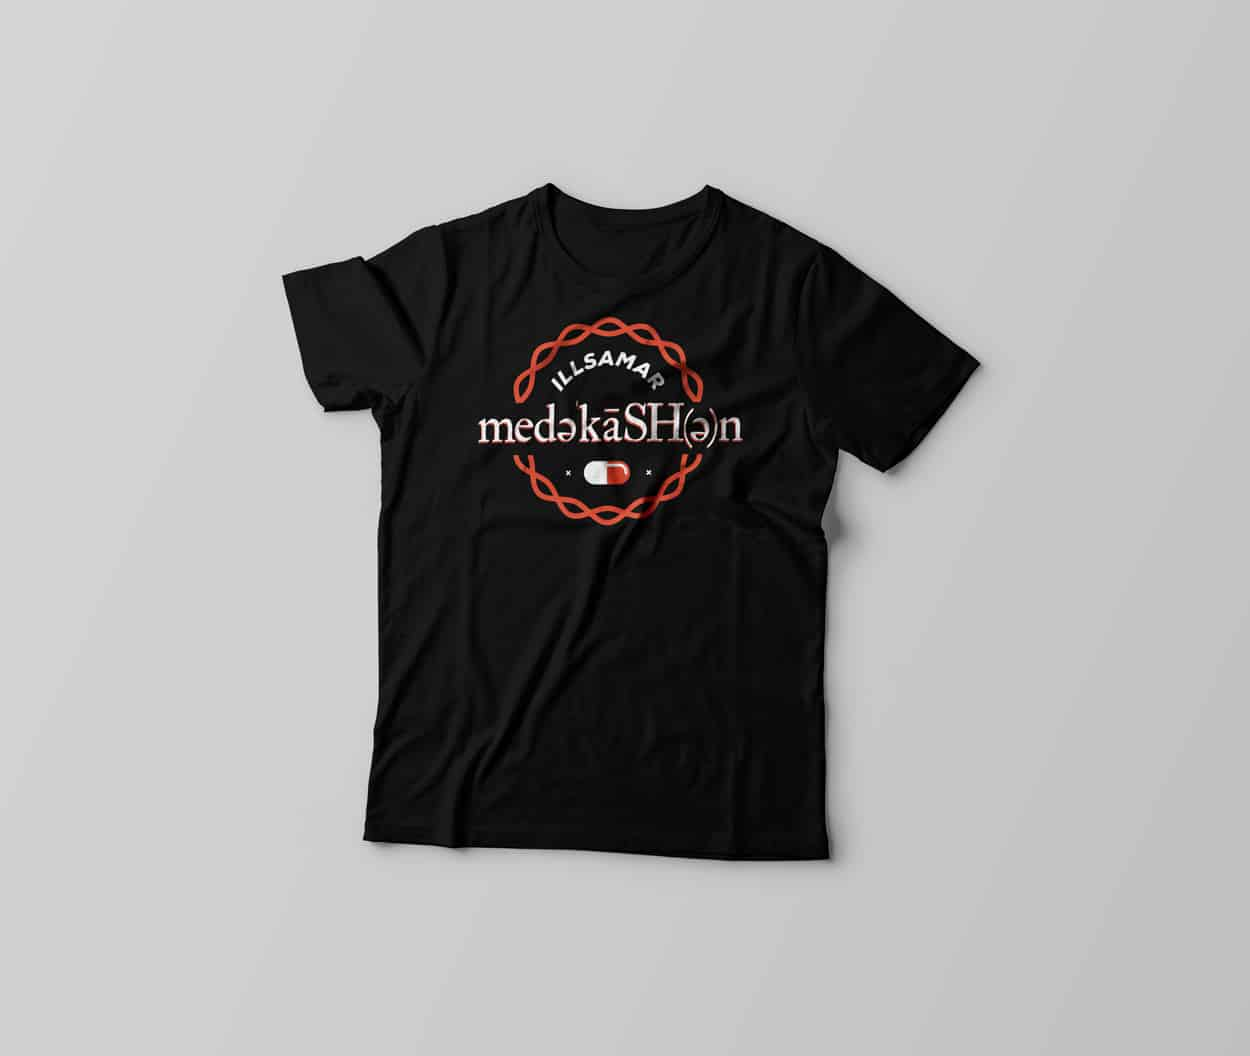 illsamar - medekeshen - t-shirt design - photo